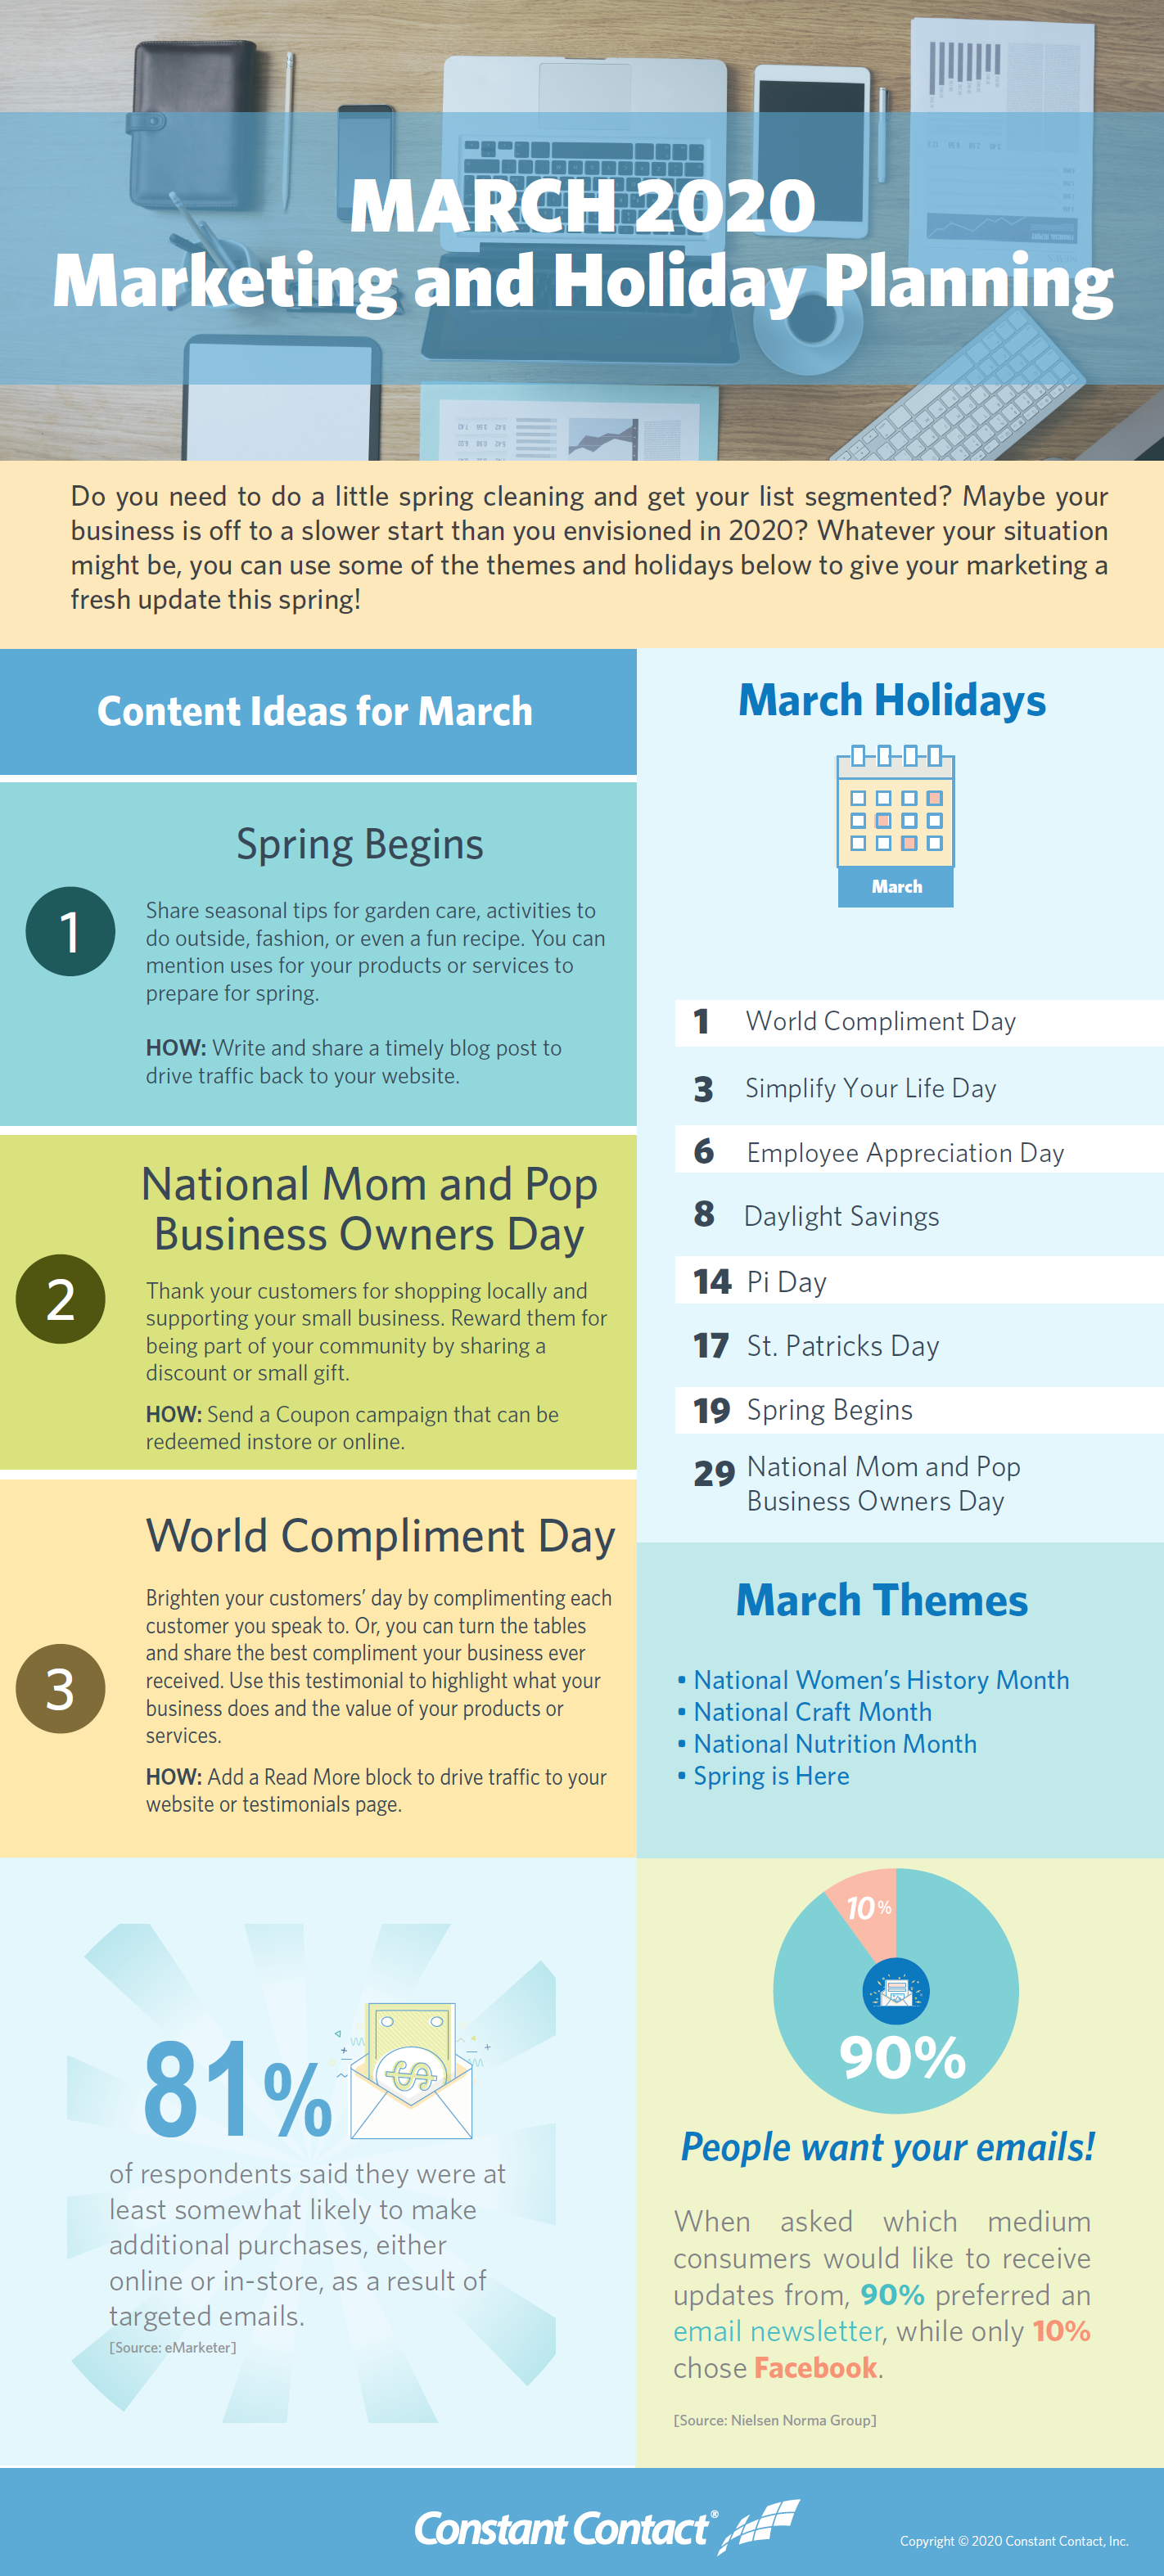 March 2020 Marketing and Holiday Planning infographic